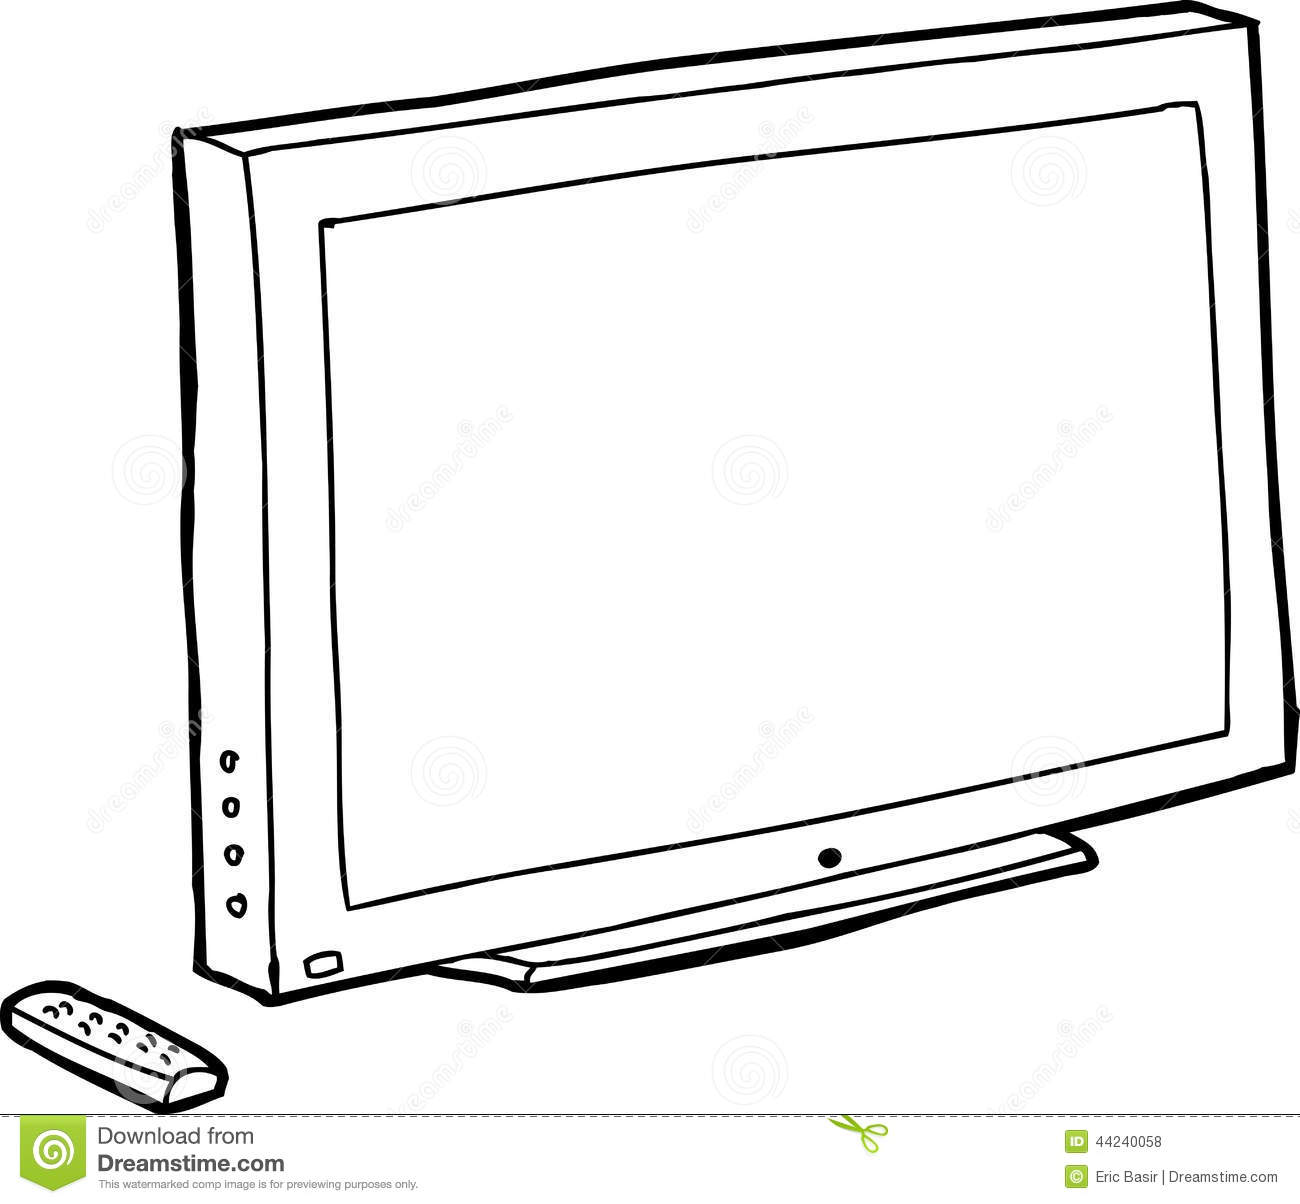 Television Outline Clipart - Clipart Suggest